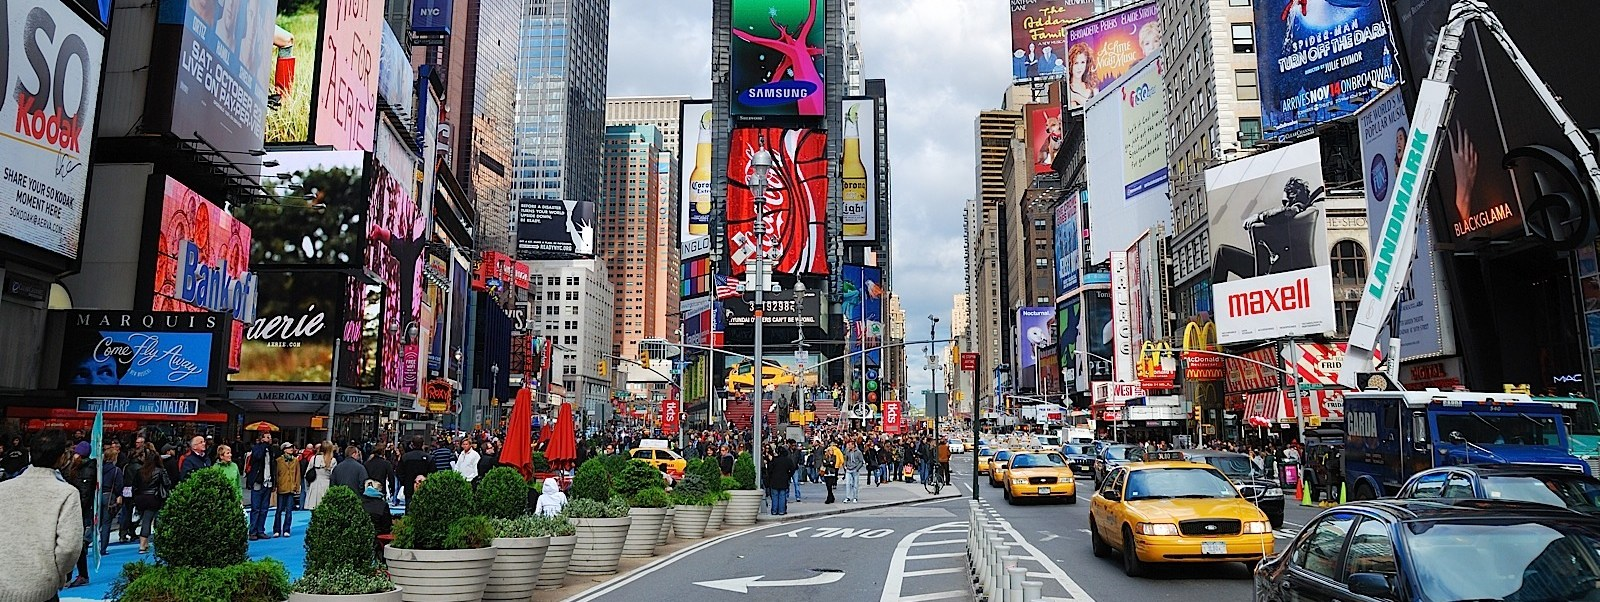 7 best shopping destinations in new york city kanigas for Best consignment stores nyc